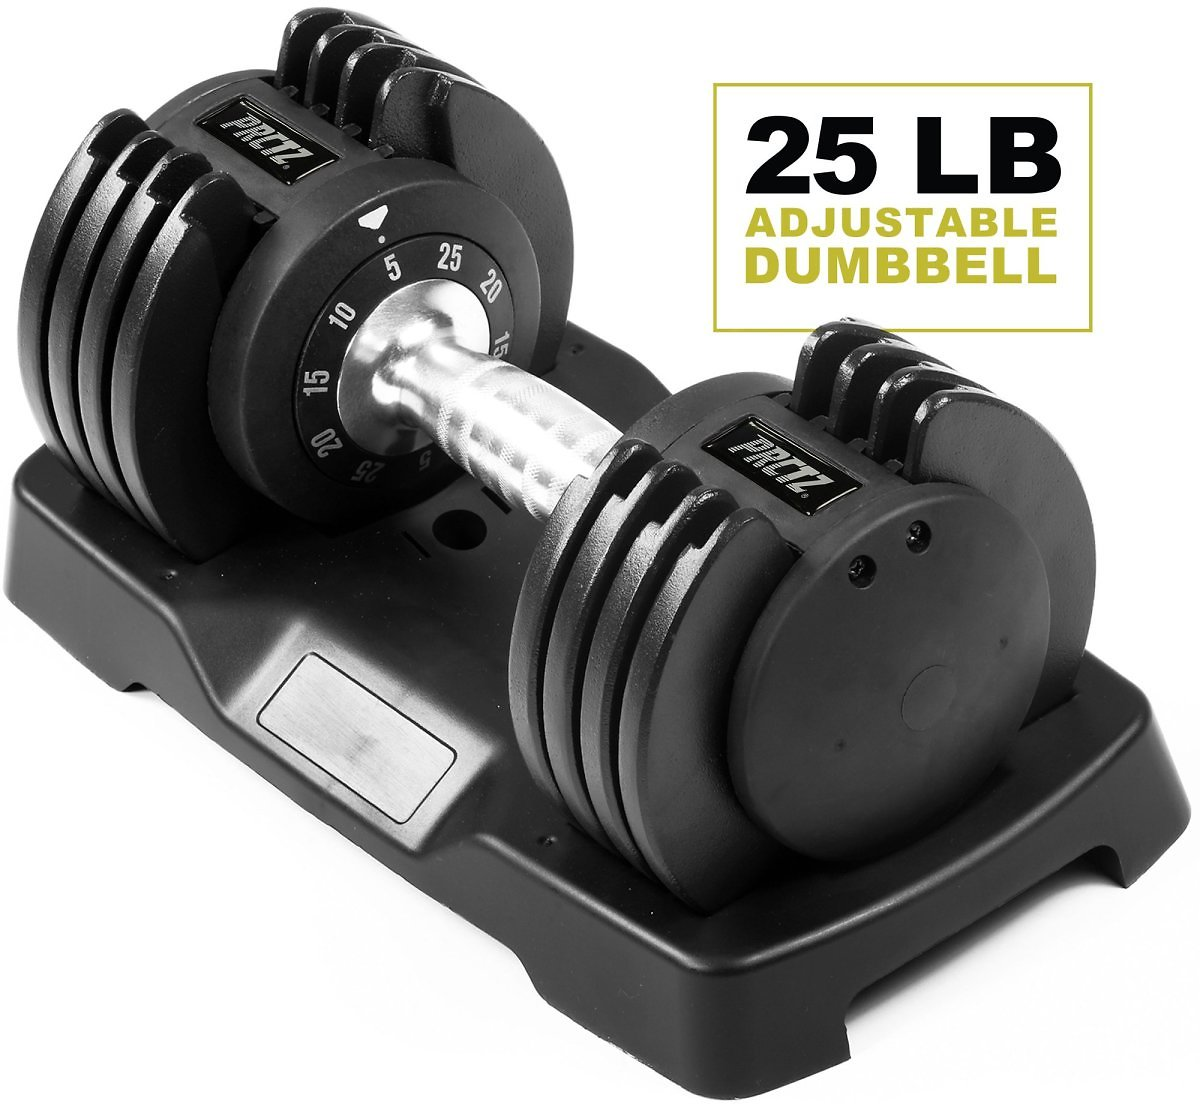 PRCTZ Adjustable Dumbbell, Single - Available in 25lb & 55lb